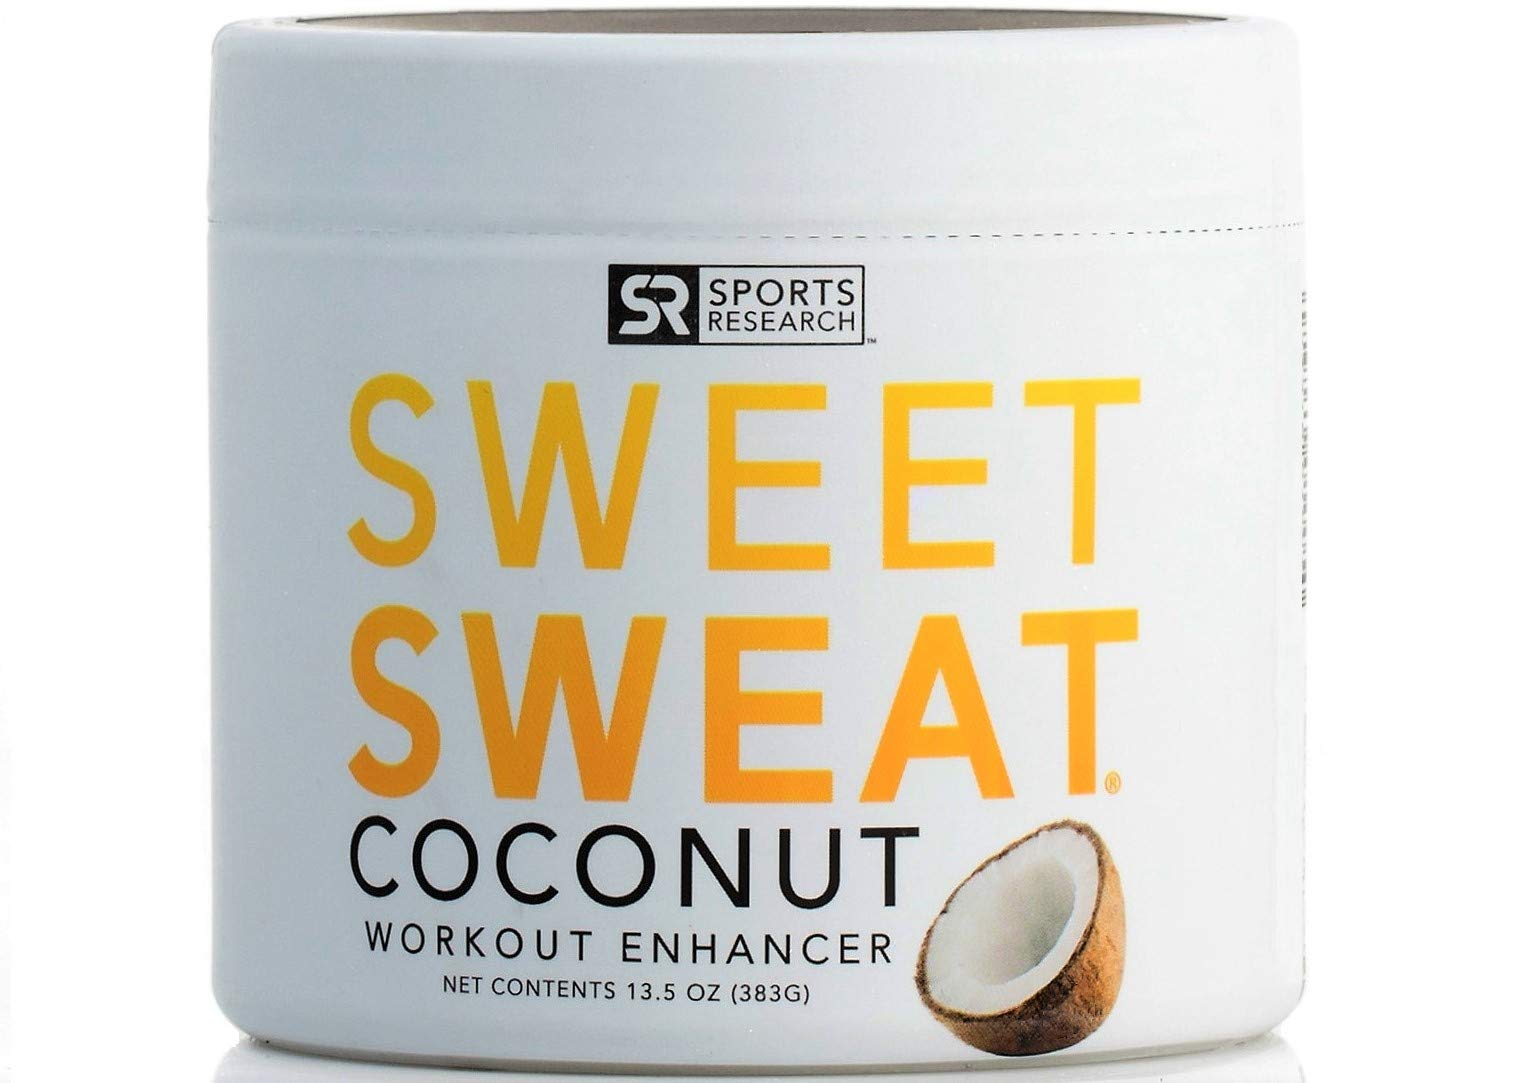 Sweet Sweat Coconut 'XL' Jar 13.5oz | Helps increase circulation, sweating and motivation during exercise | Made with Extra Virgin Organic Coconut Oil and 7 other Natural Oils